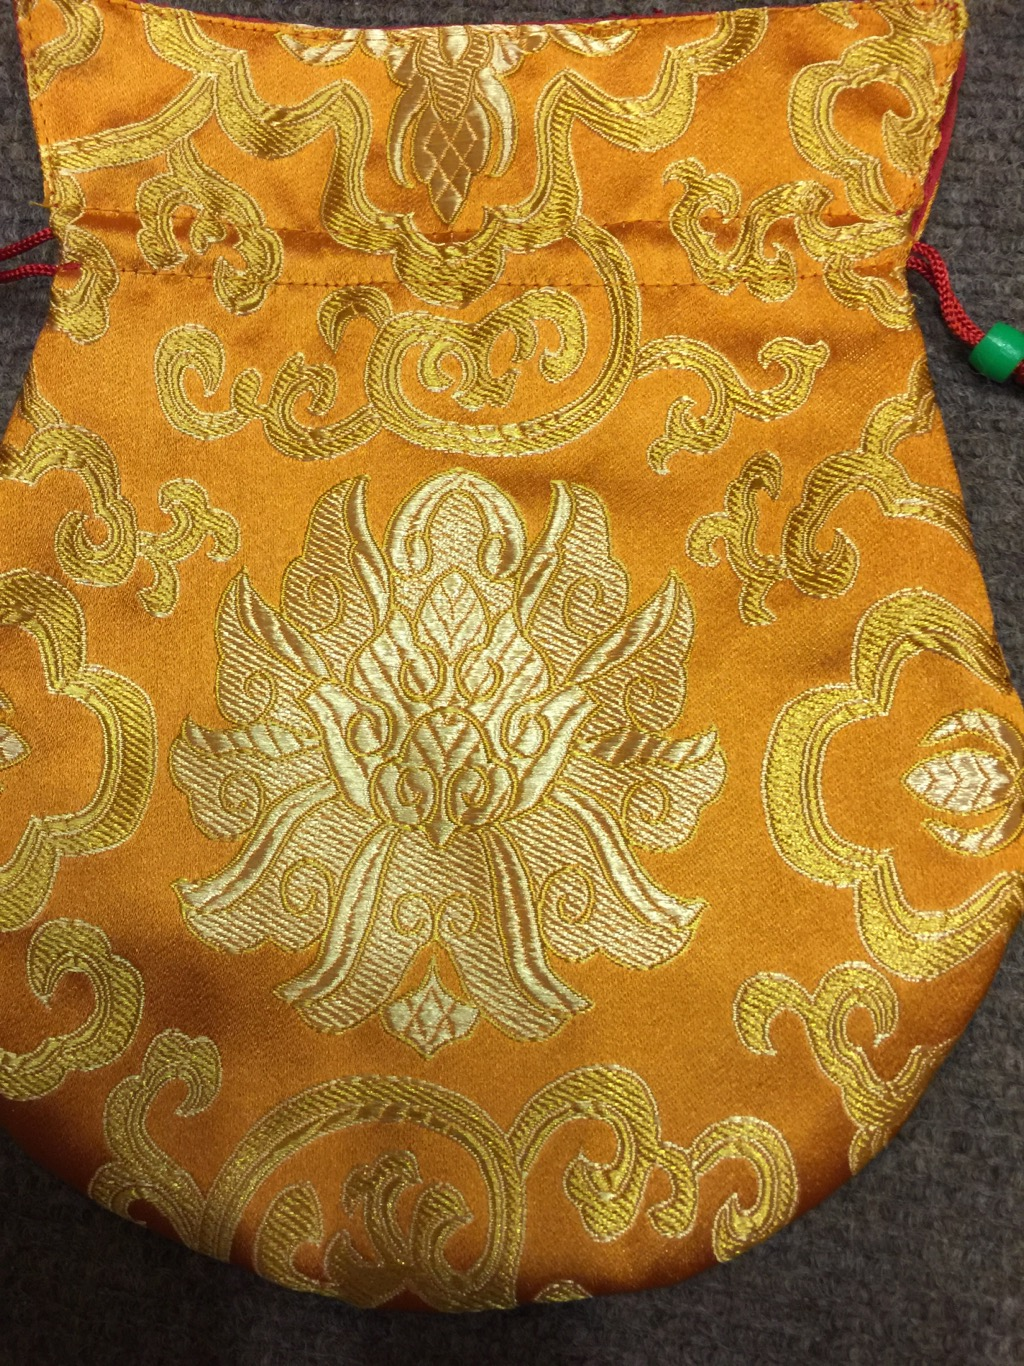 Tibetan Large Size Silk Orange Lotus Mala Bag